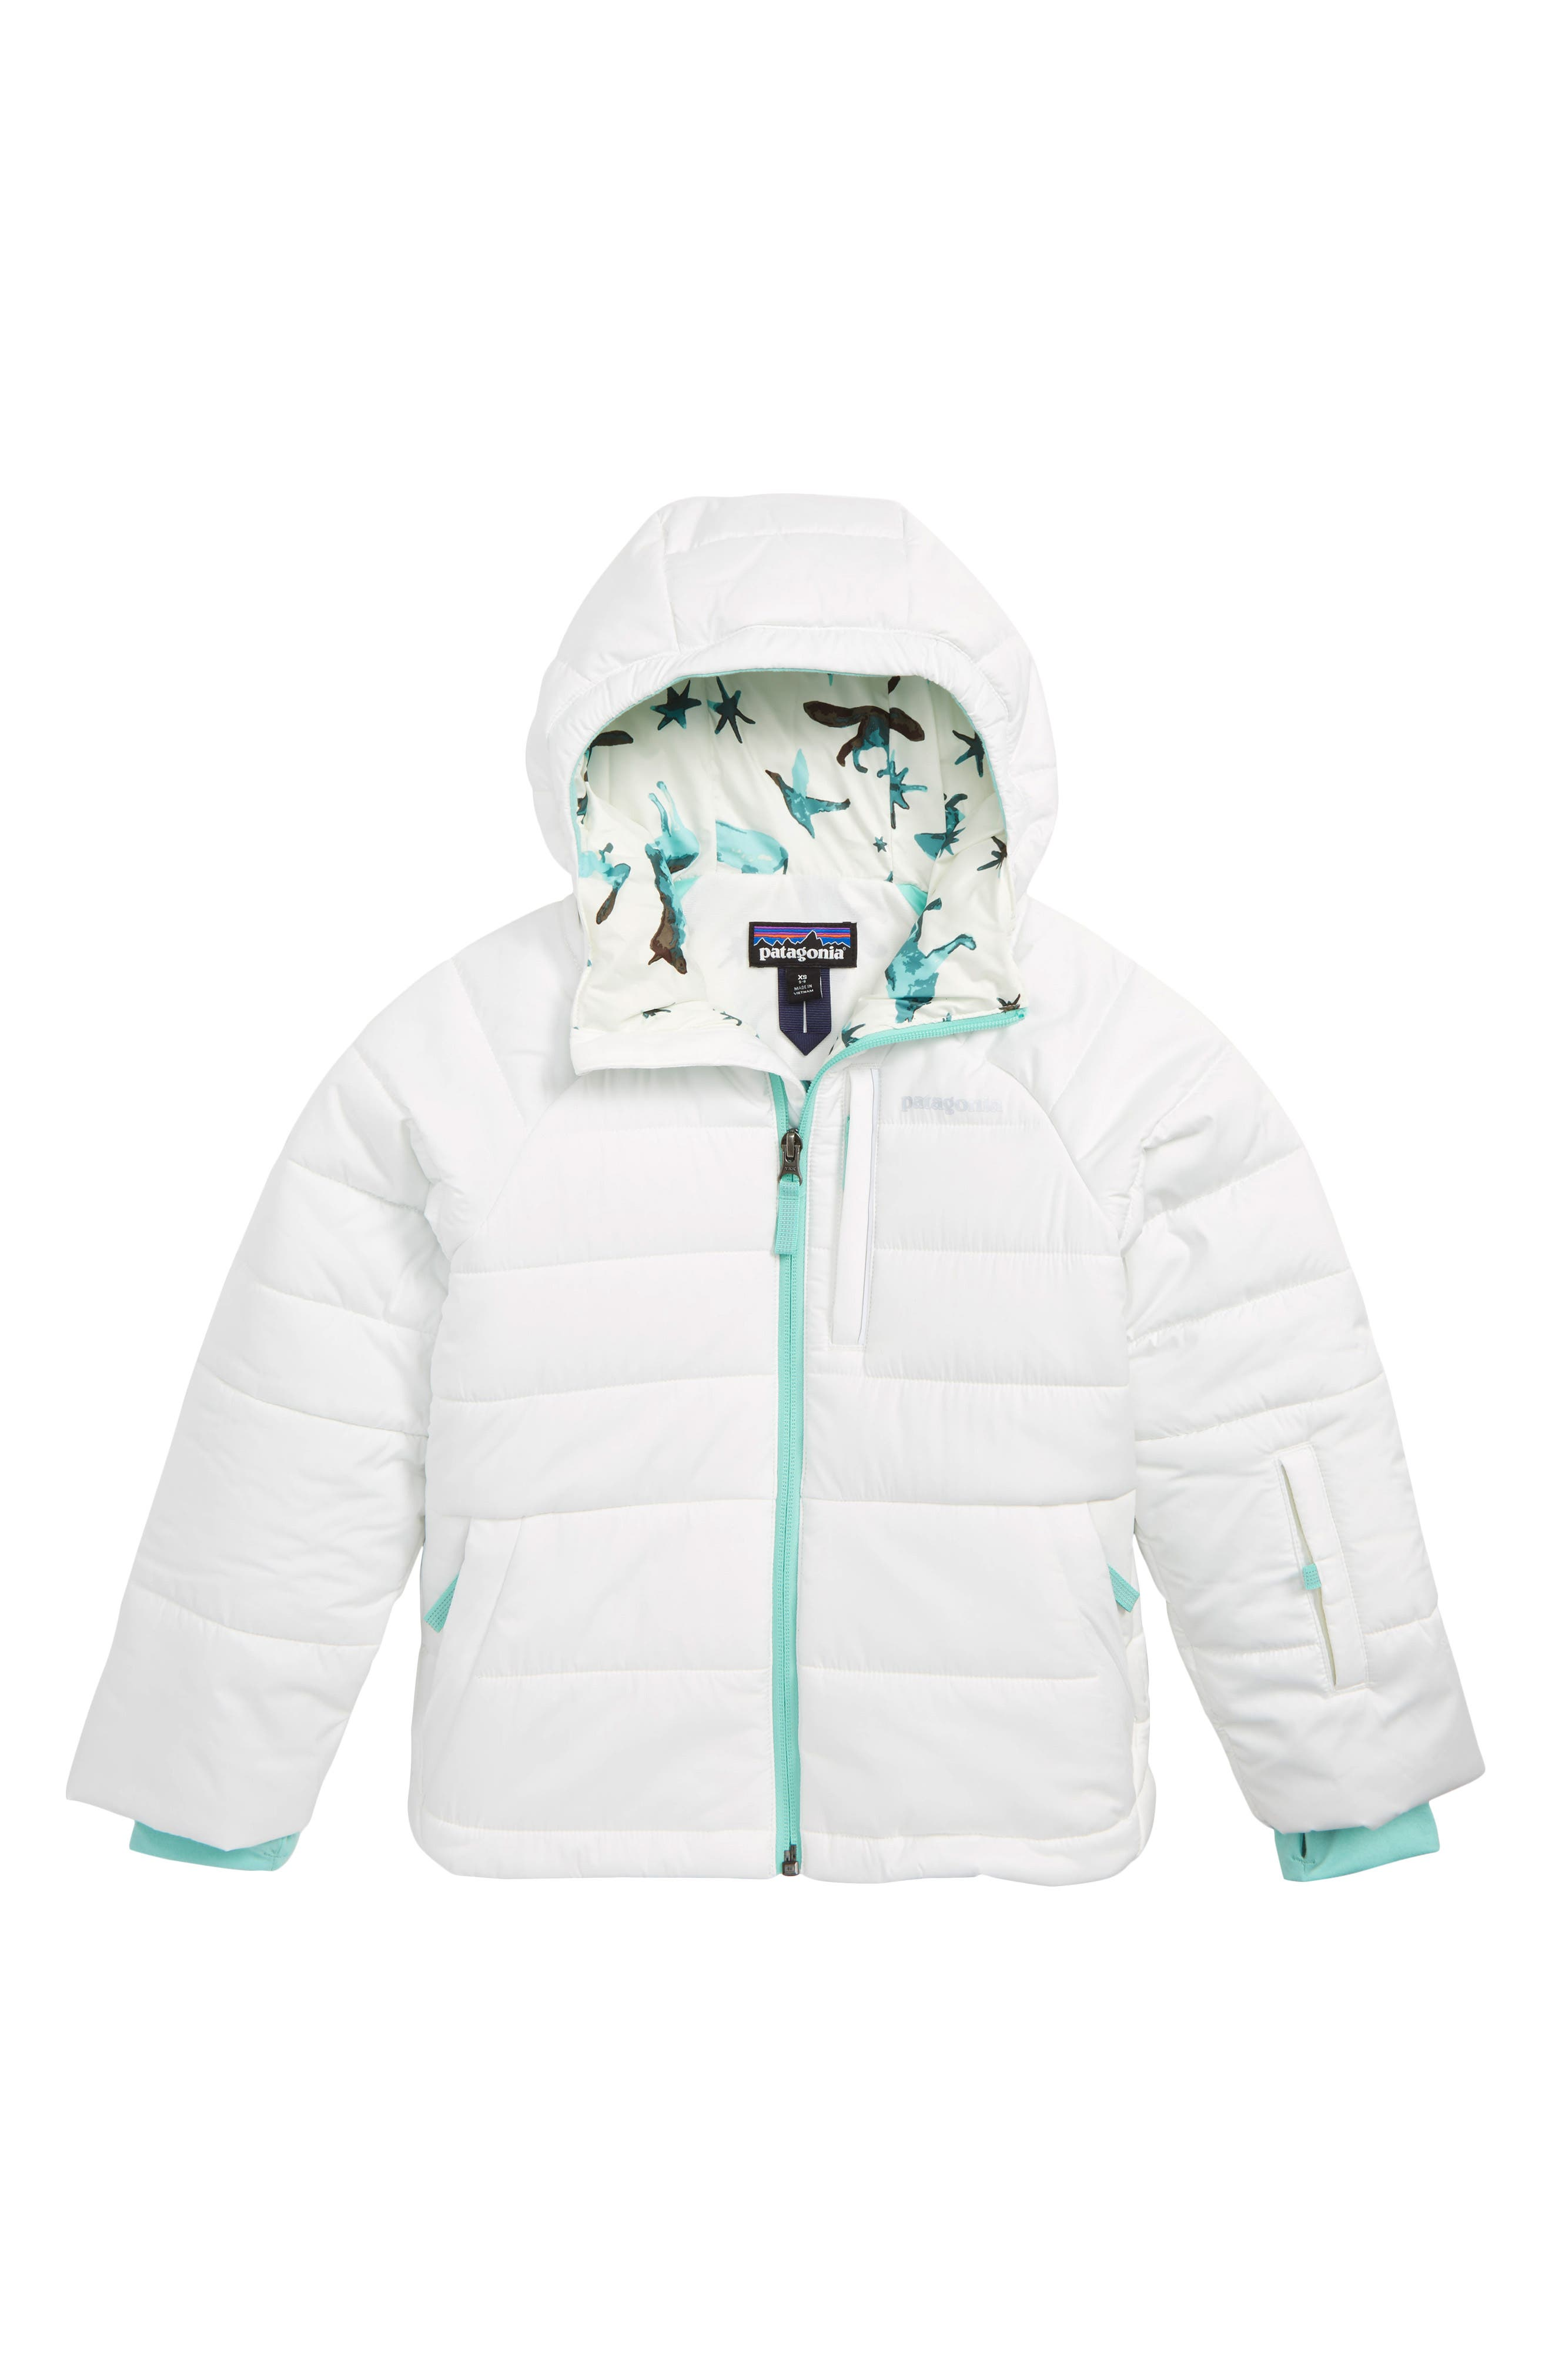 Aspen Grove Water Resistant Hooded Jacket,                             Main thumbnail 1, color,                             NATURAL BIRCH WHITE